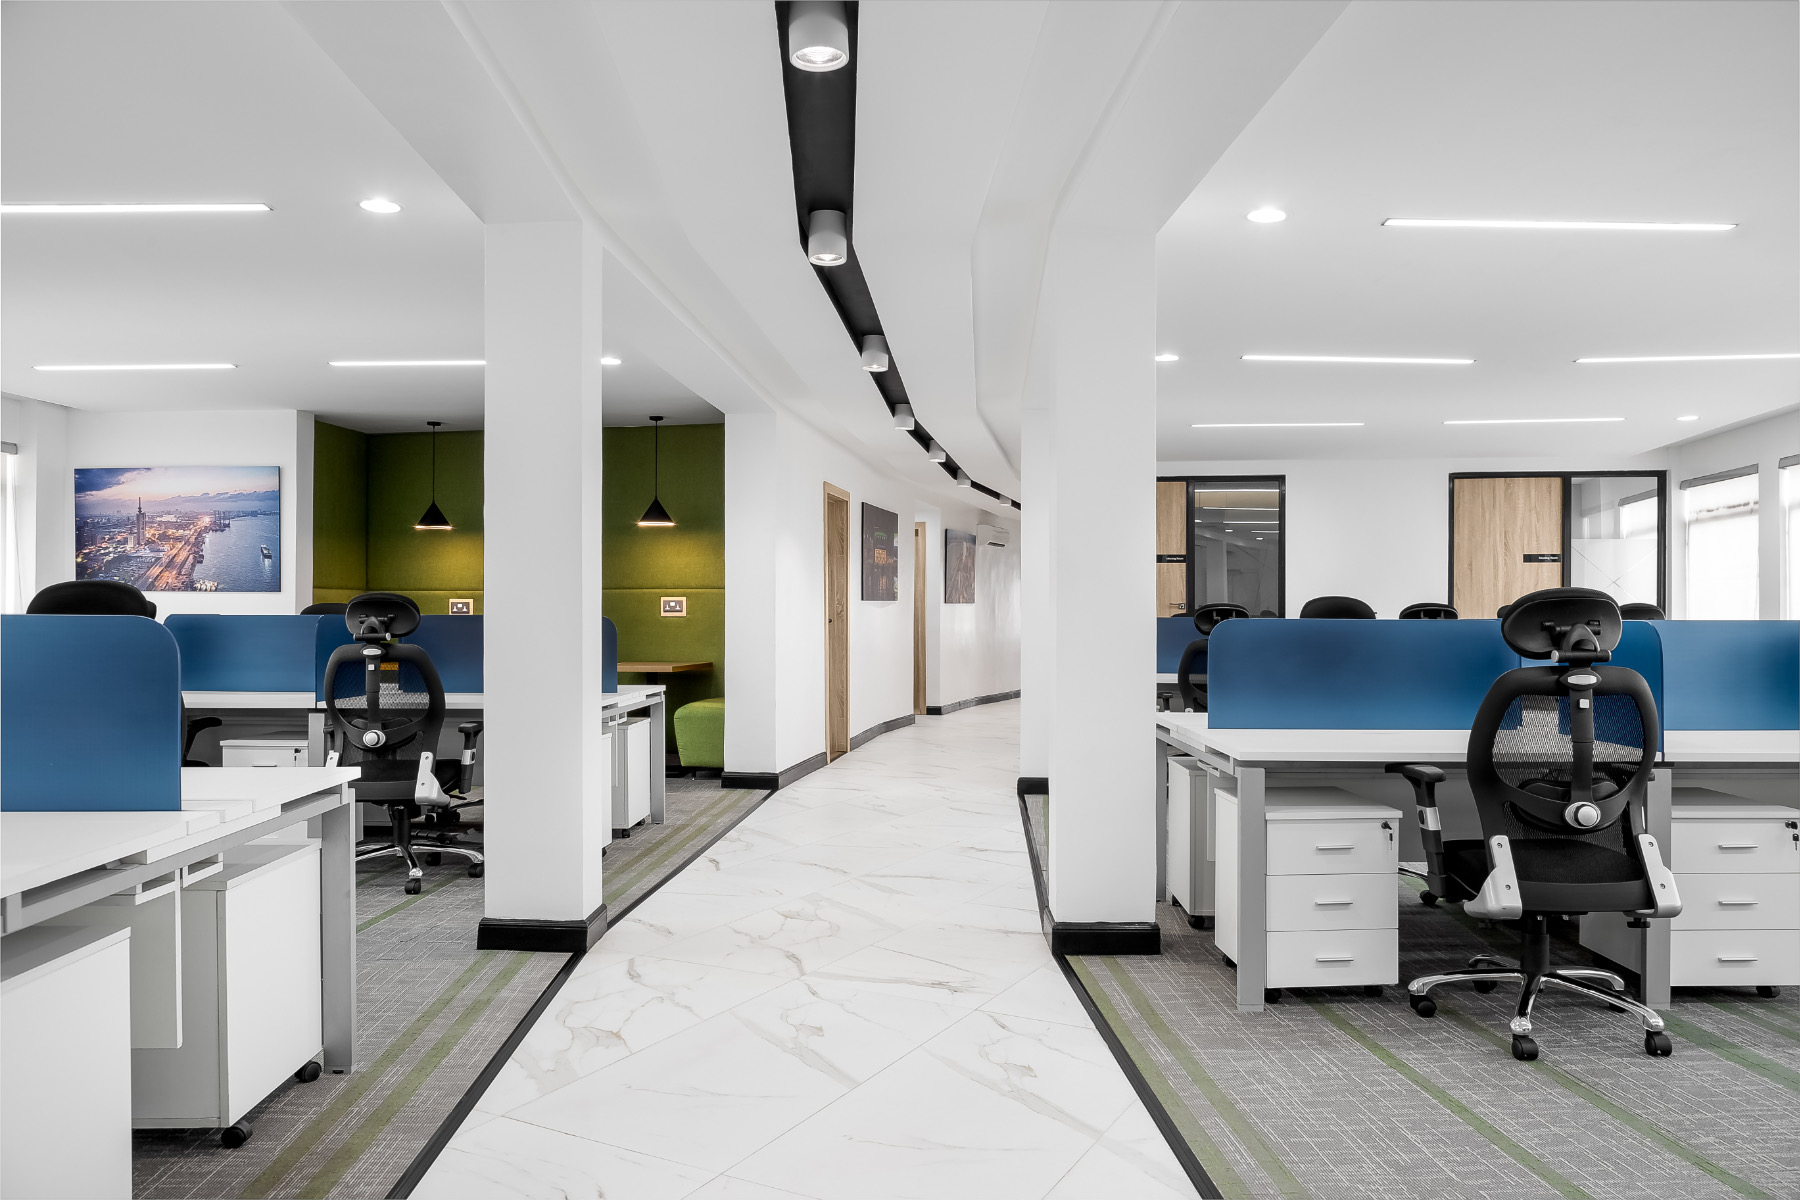 A Look Inside UAC's New Lagos Office